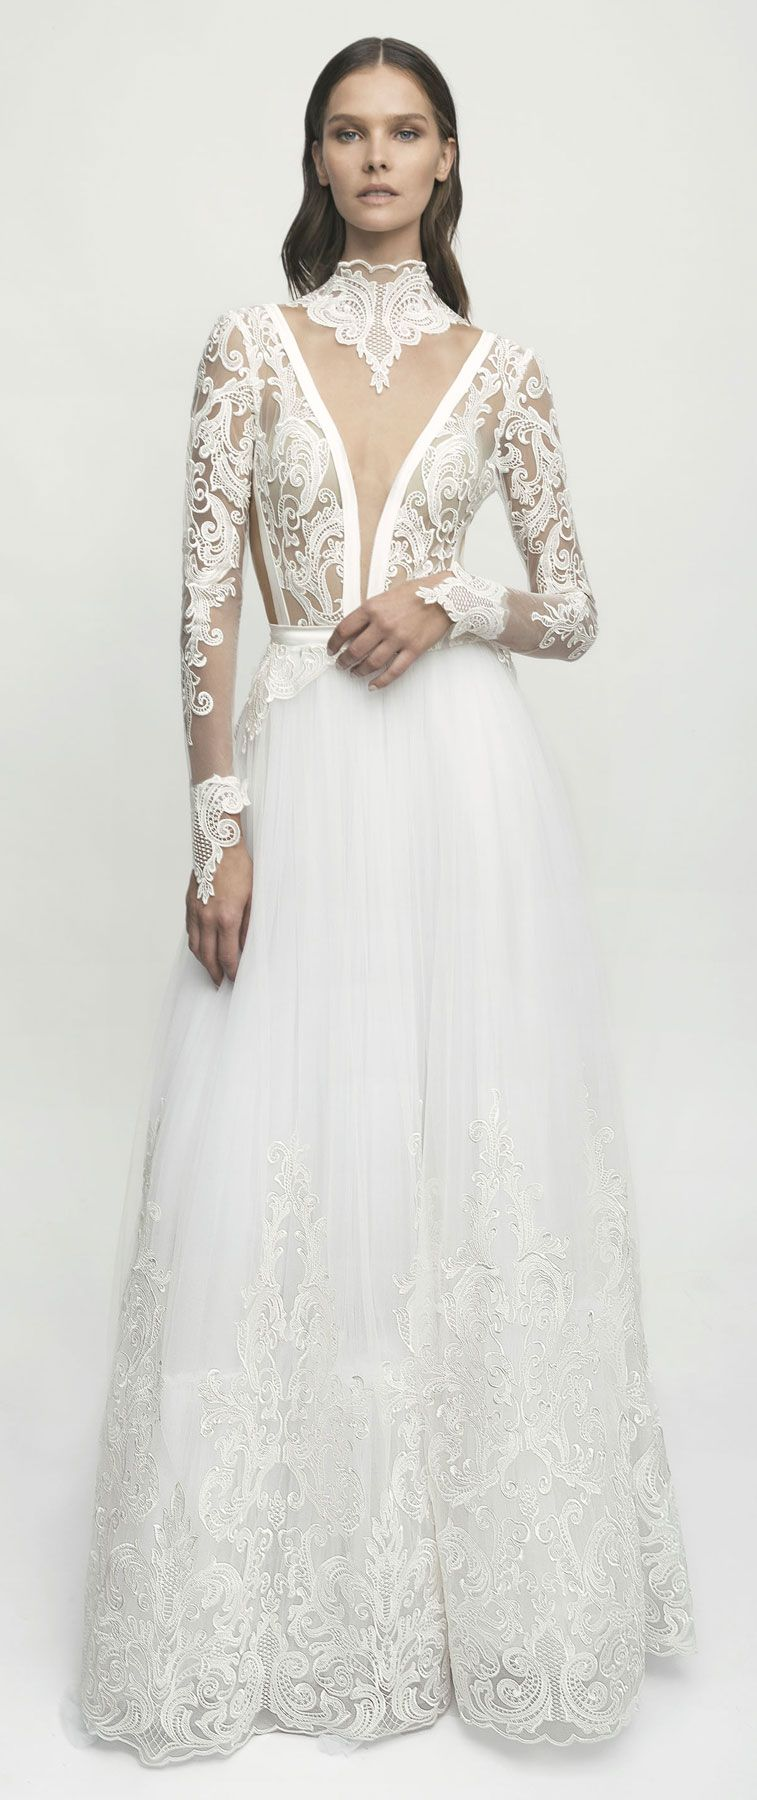 Bridal long sleeves high neck deep plunging neck line wedding dress #weddingdress #wedding #weddinggown #bridedress